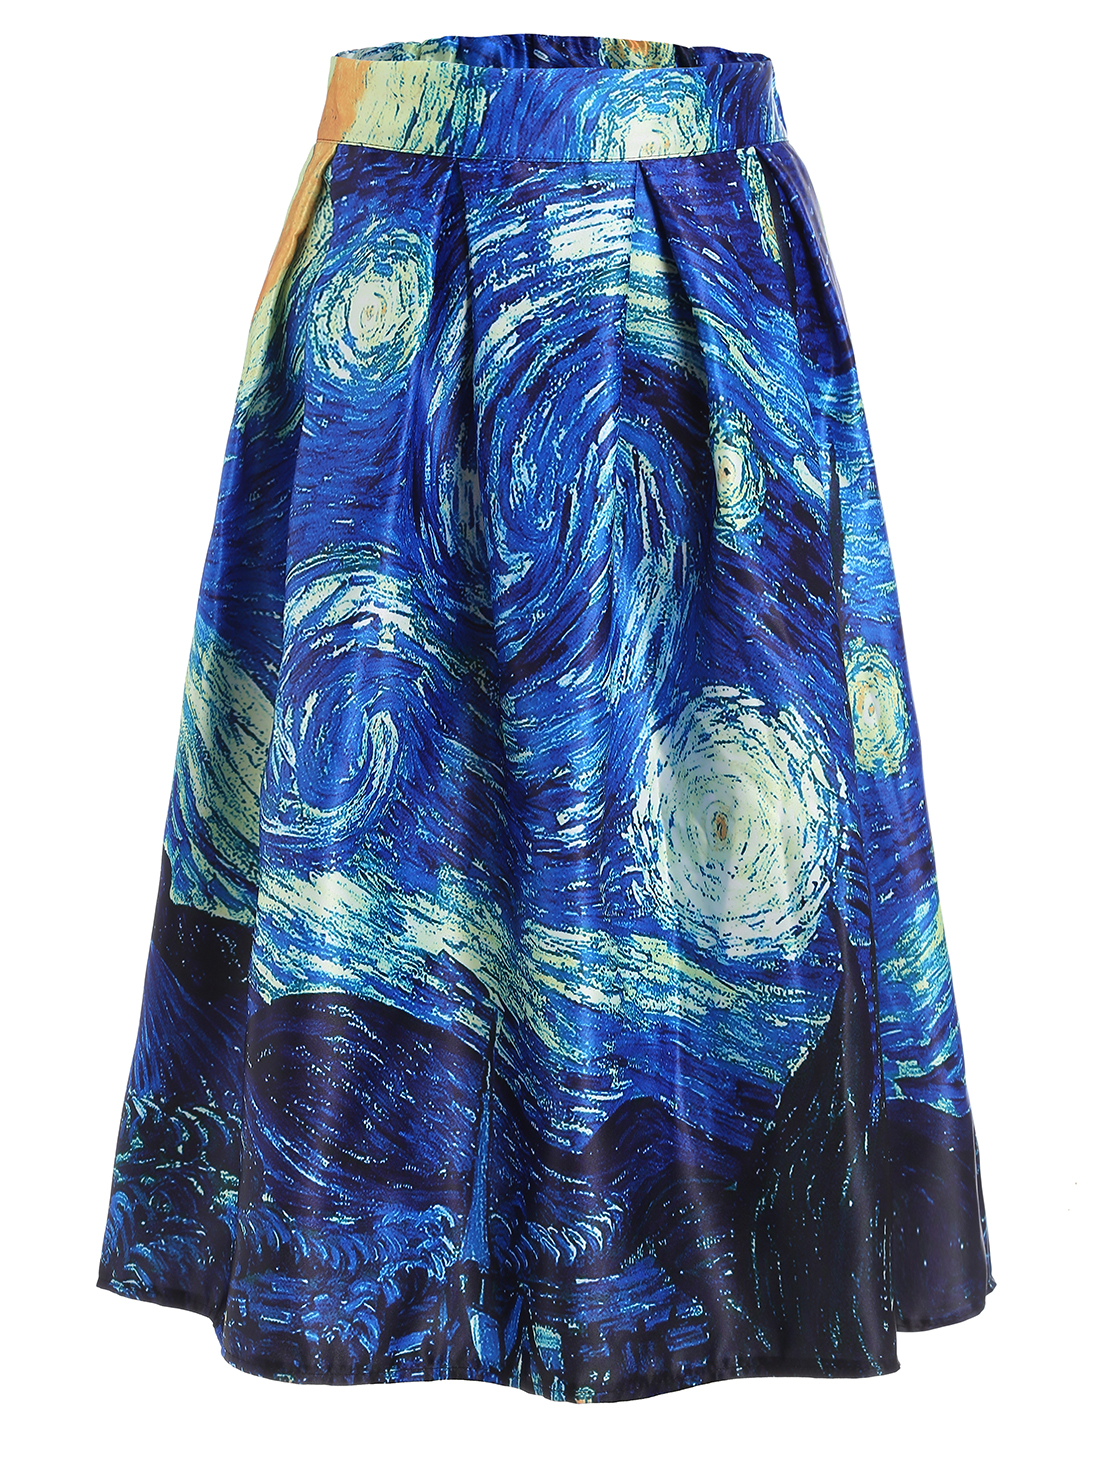 The Starry Night Print Box Pleated Skirt. | My style - haves, want ...